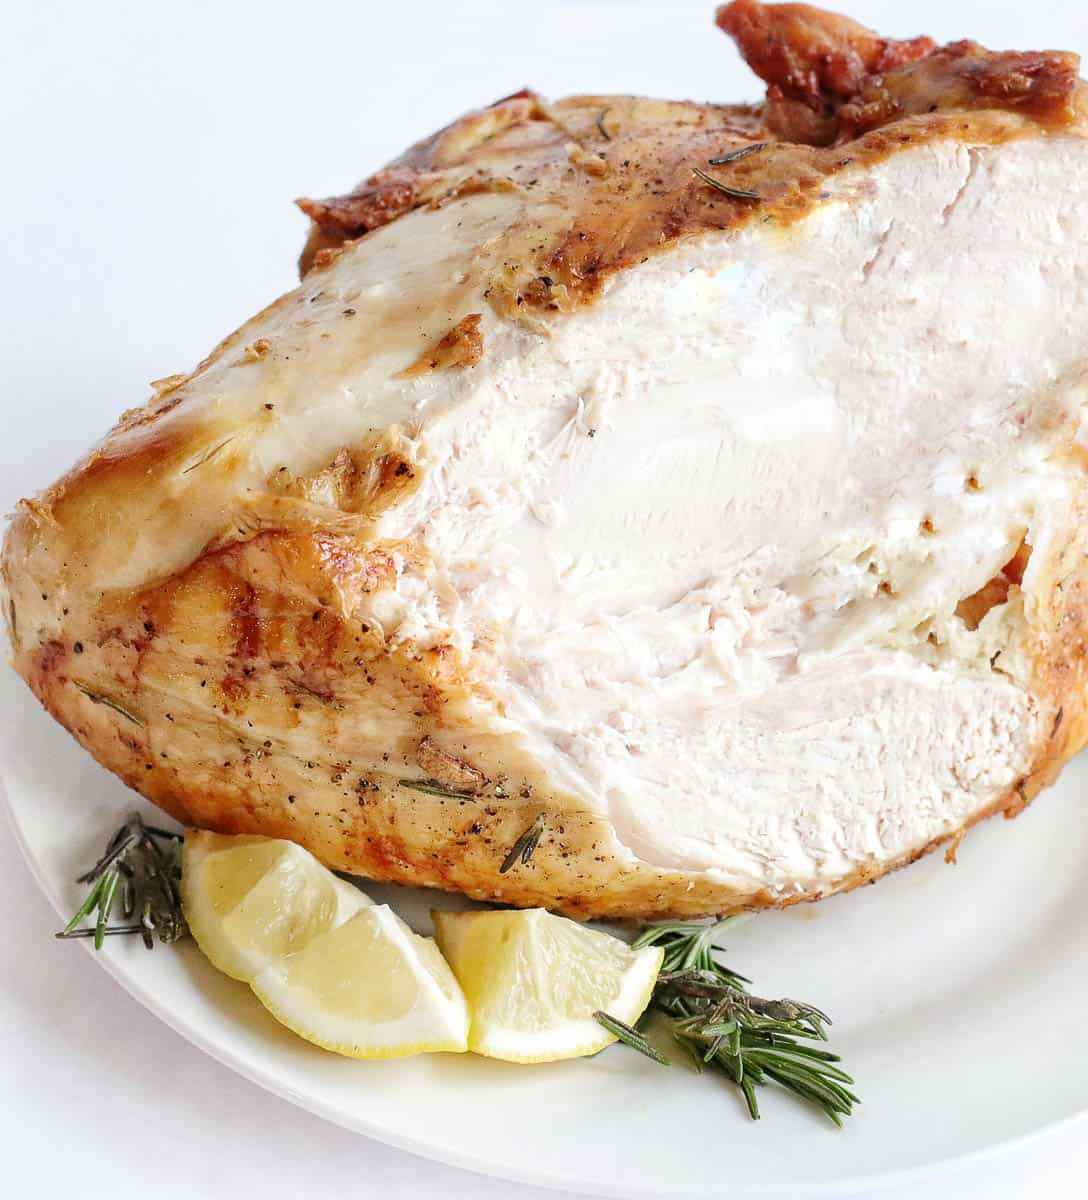 Cooked turkey breast with a slice cut out